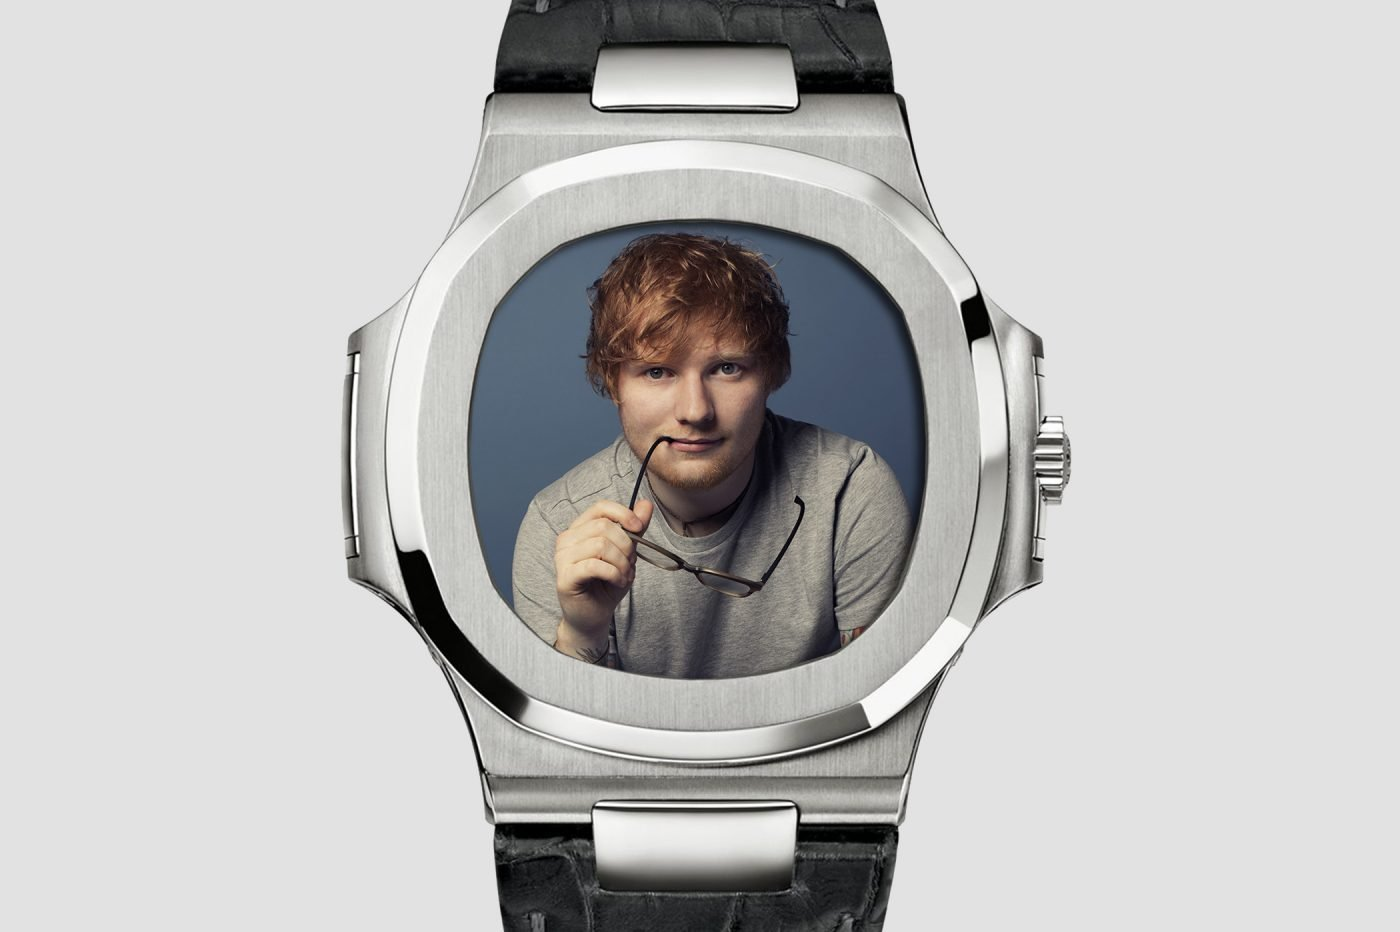 Timebloid Horological showbiz: Ed Sheeran